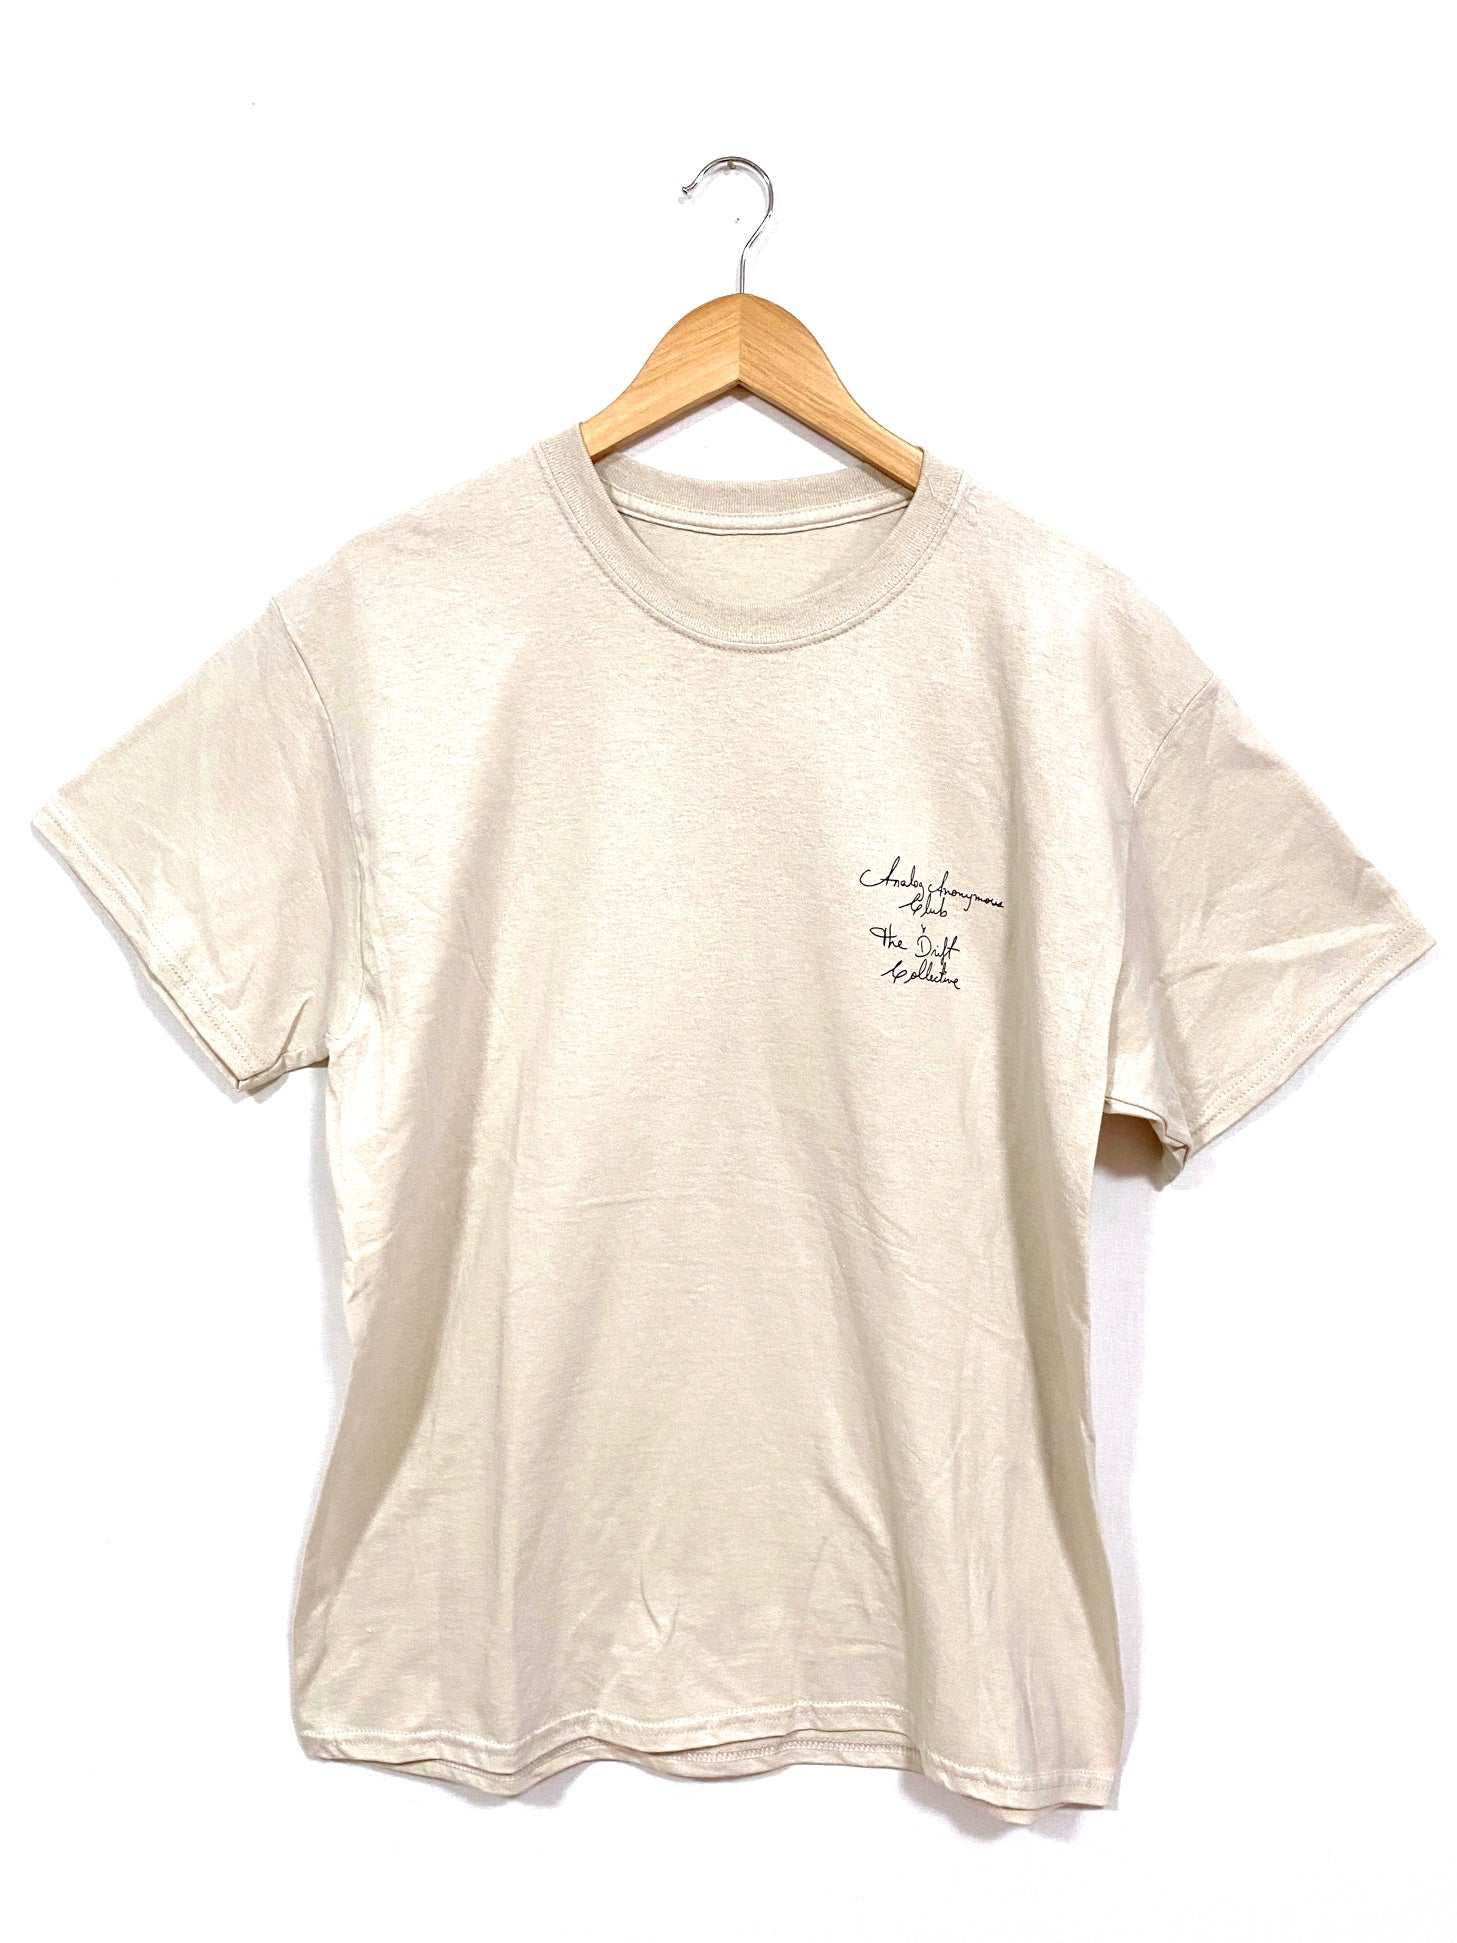 ANALOG ANONYMOUS STATION TEE